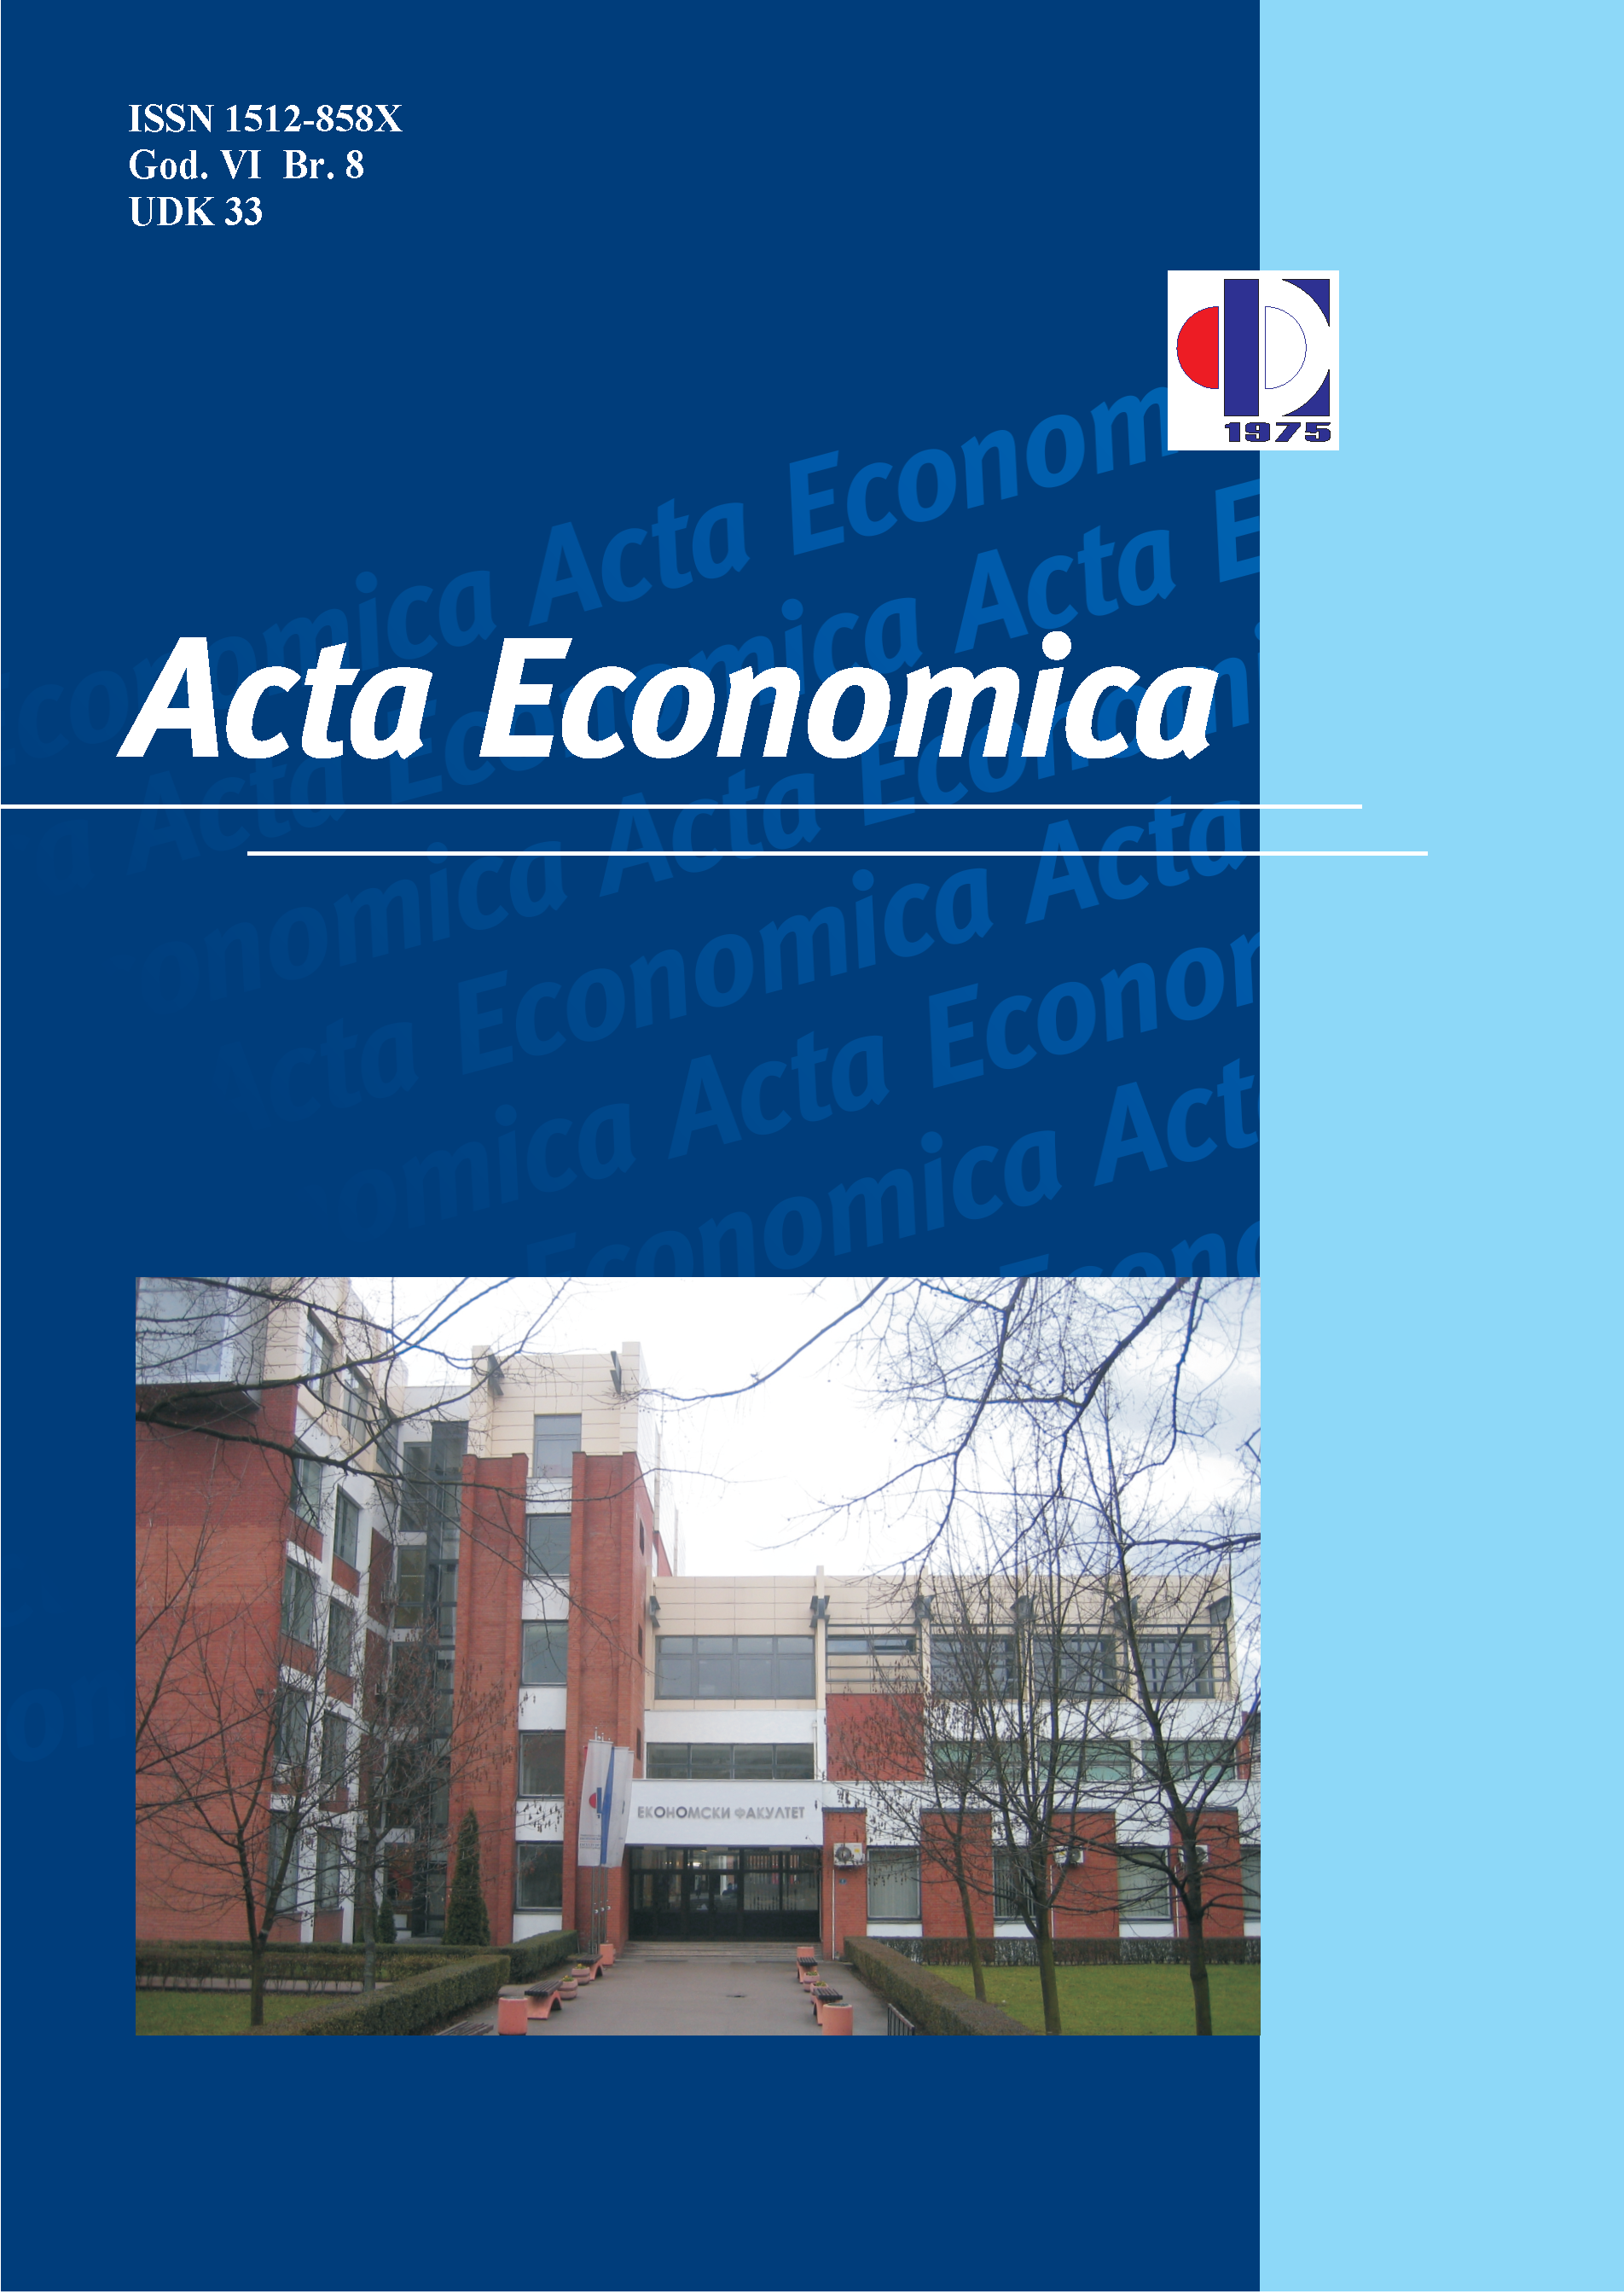 View Vol. 2 No. 2 (2003): Acta Economica